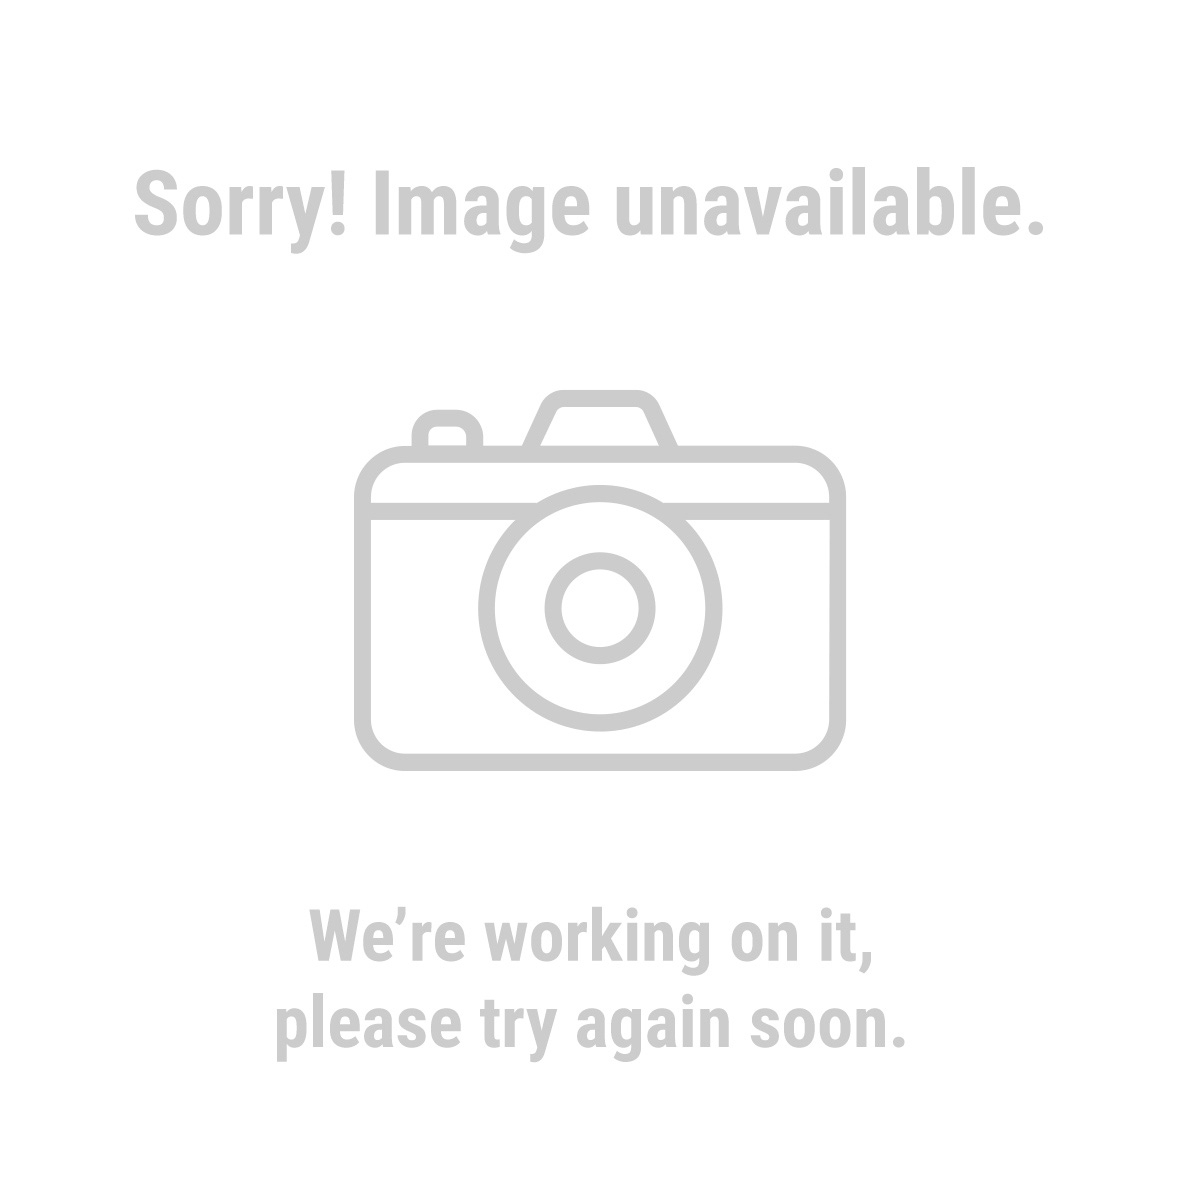 Western Safety Gloves 99677 Oil-Resistant PVC Long Cuff Gloves